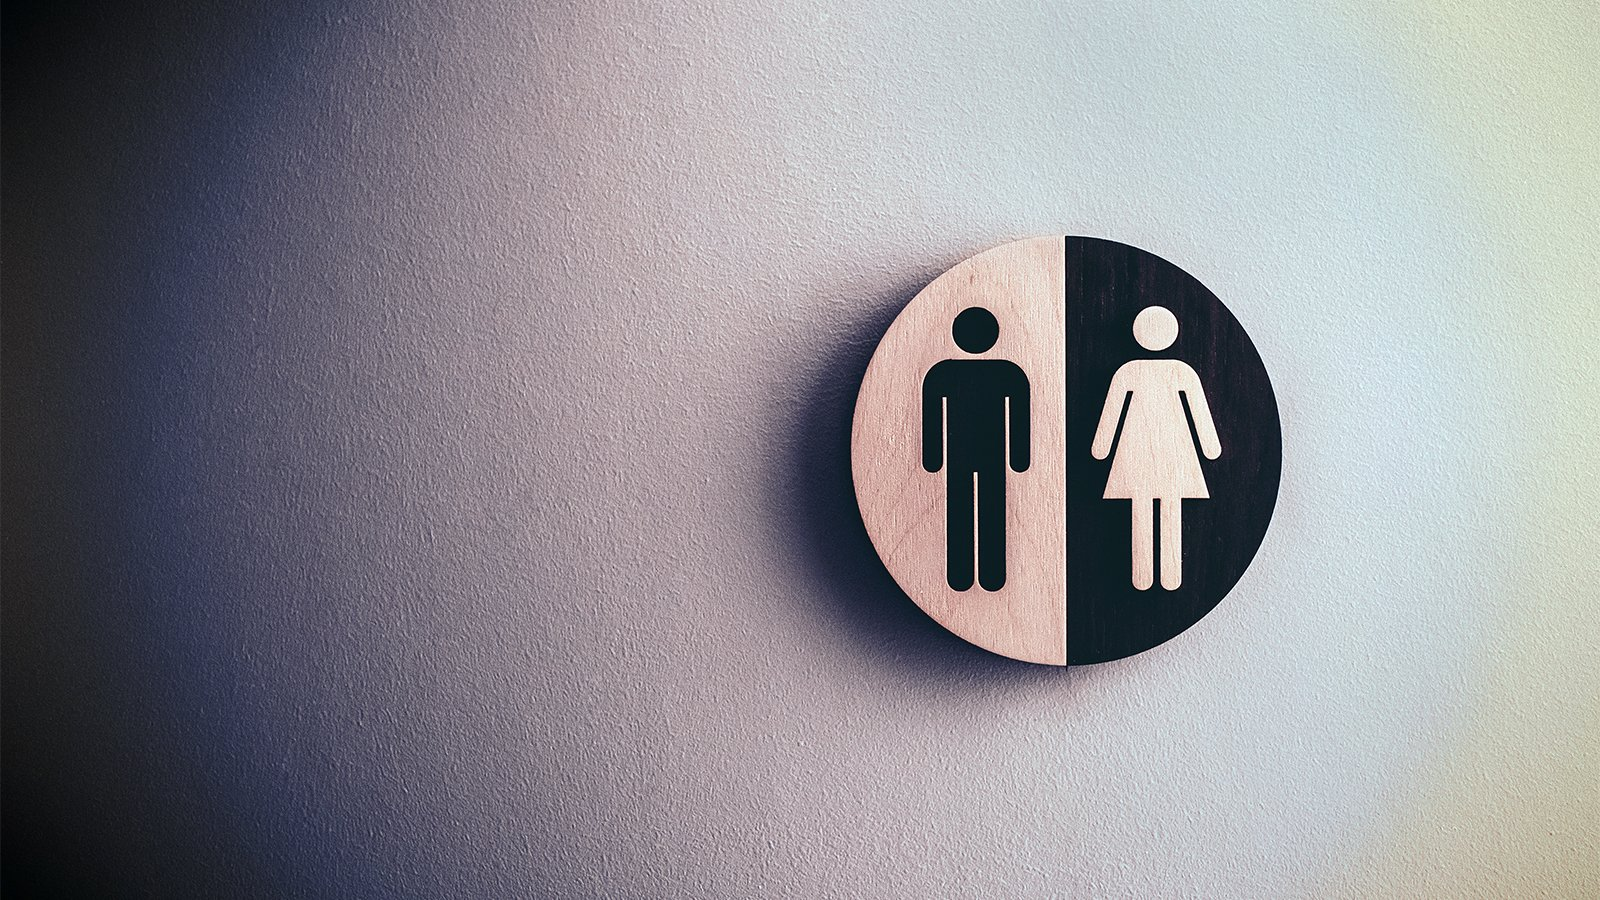 Grief hides in the church bathroom - Religion News Service